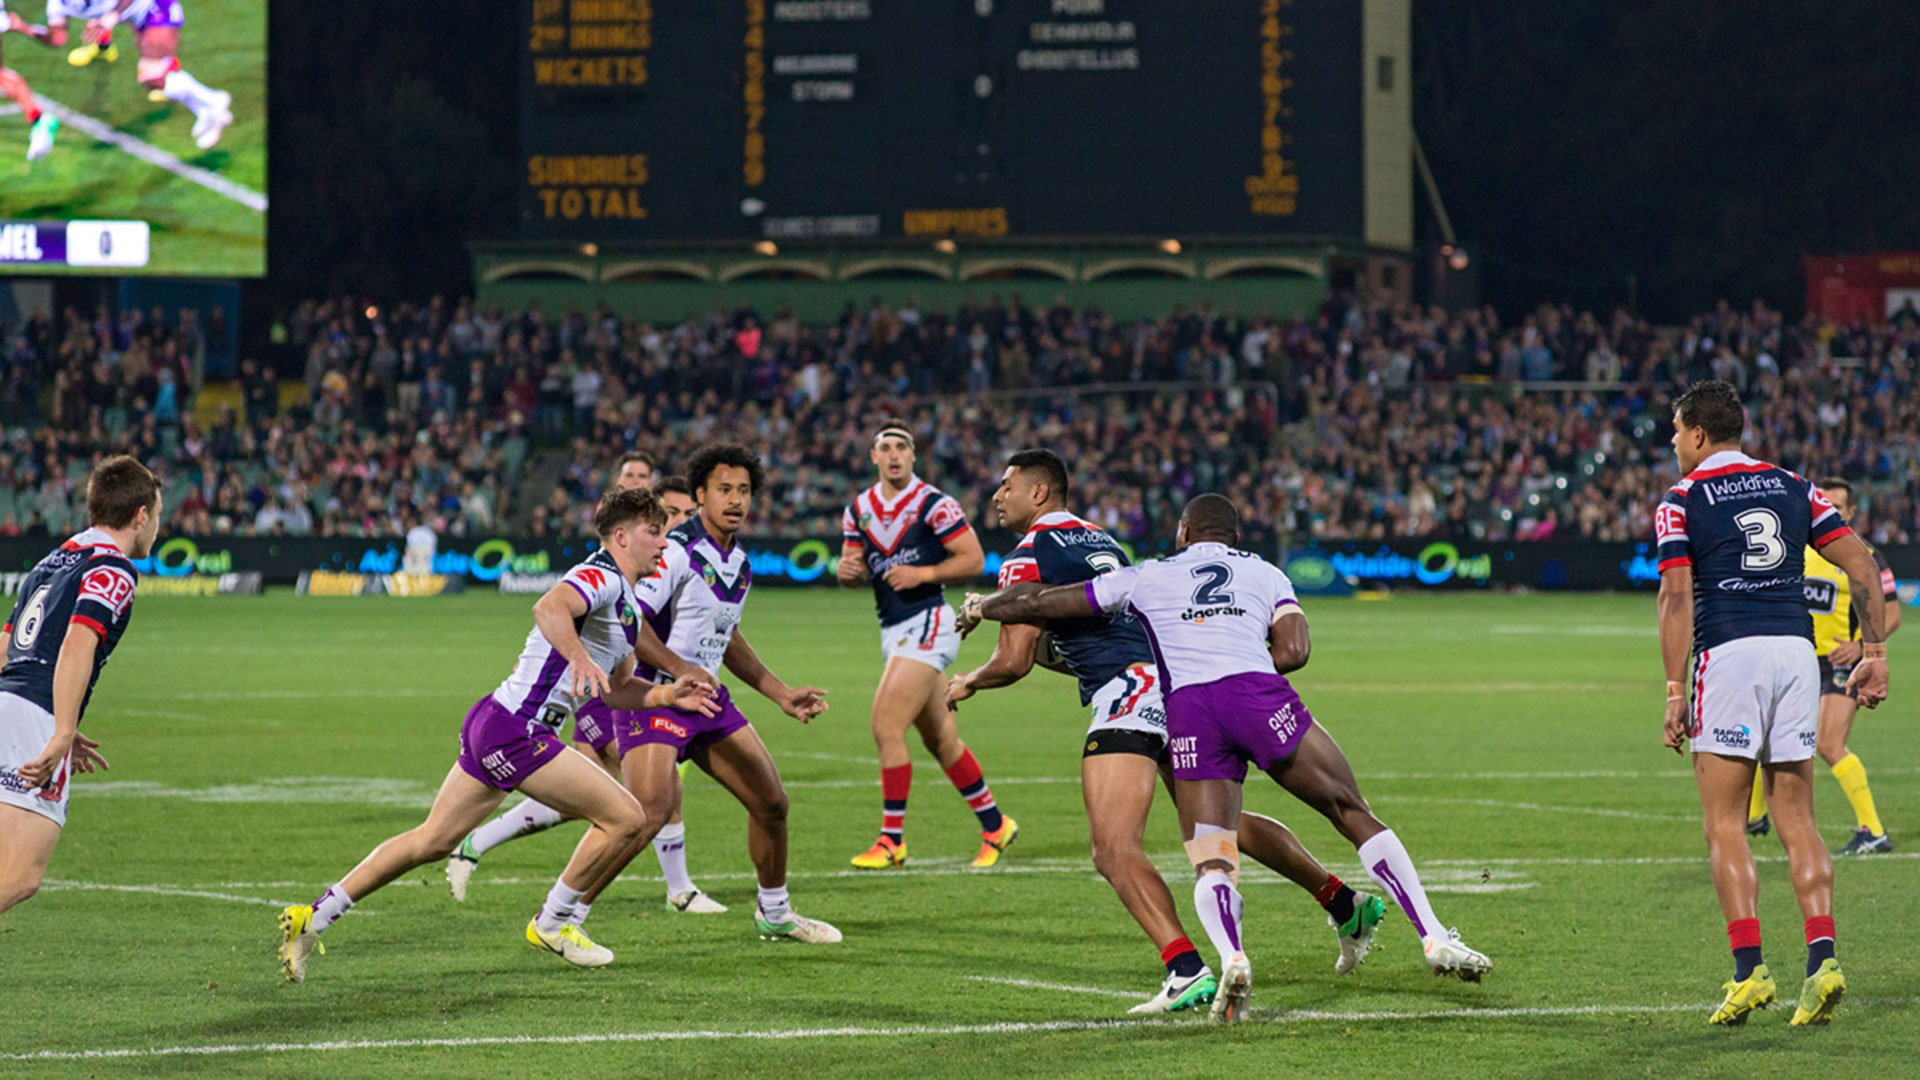 NRL Match at Adelaide Oval